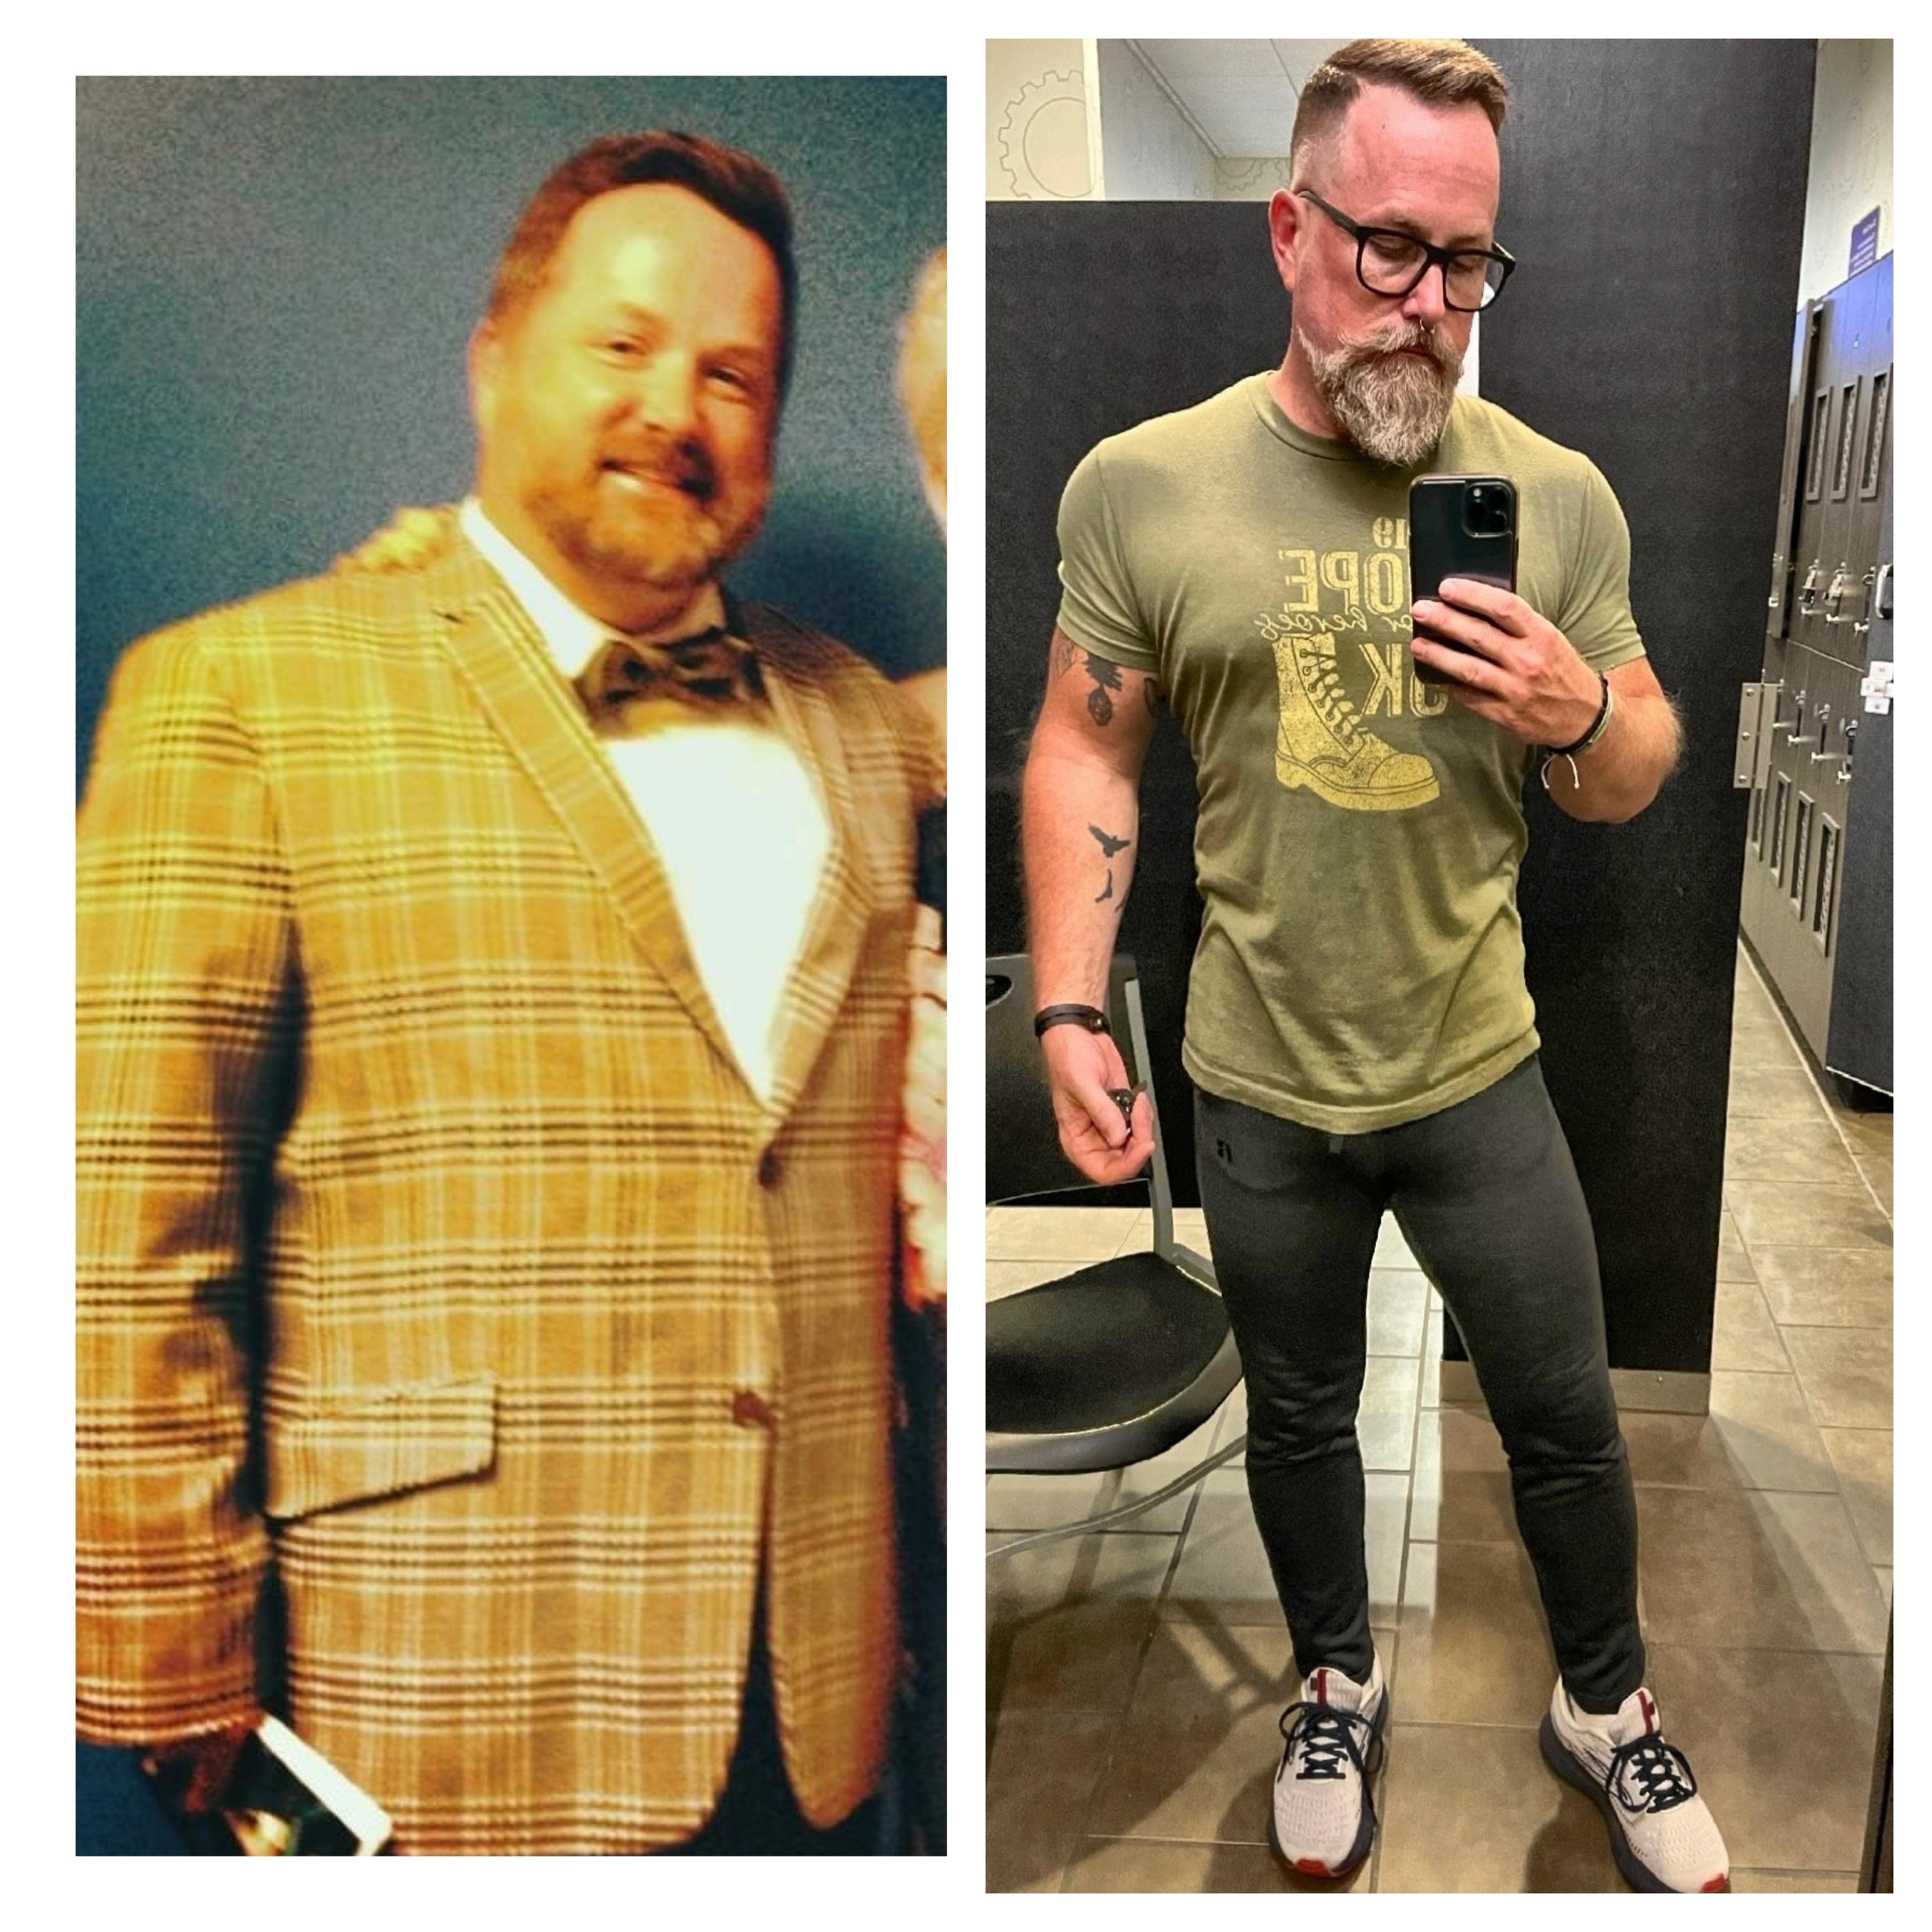 5 foot 8 Male 75 lbs Fat Loss Before and After 270 lbs to 195 lbs